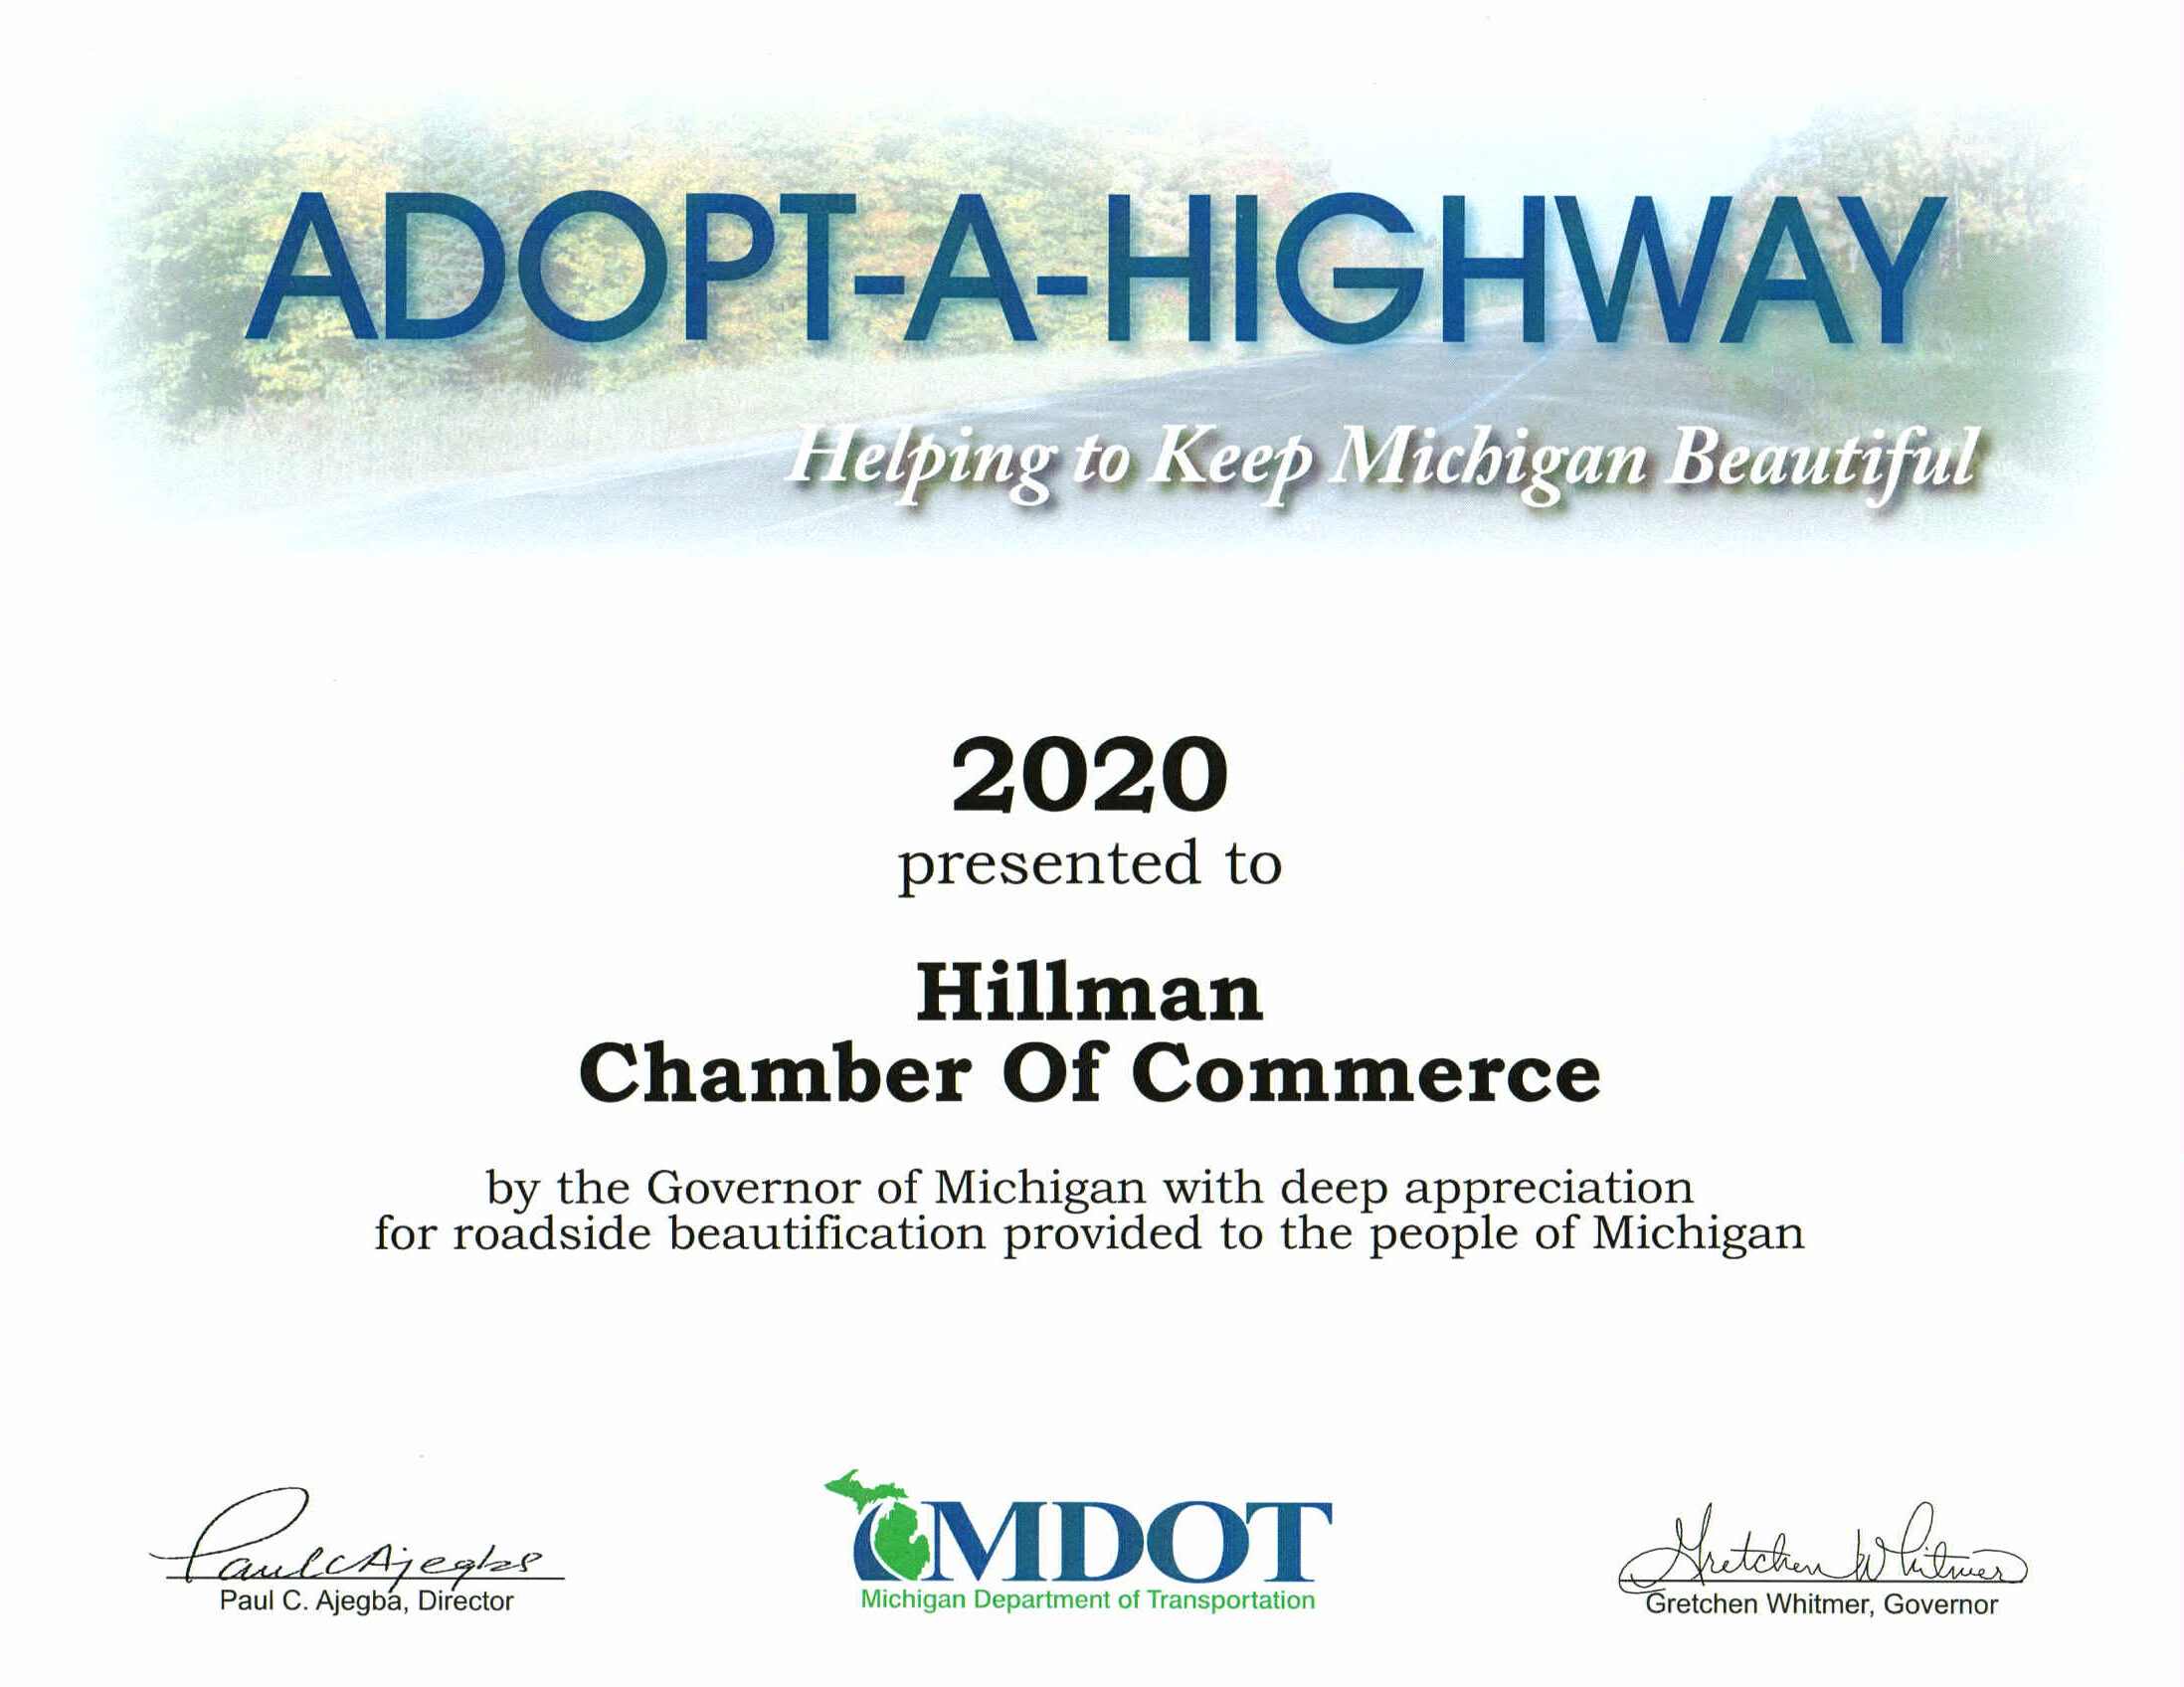 Adopt a highway 2020 certificate